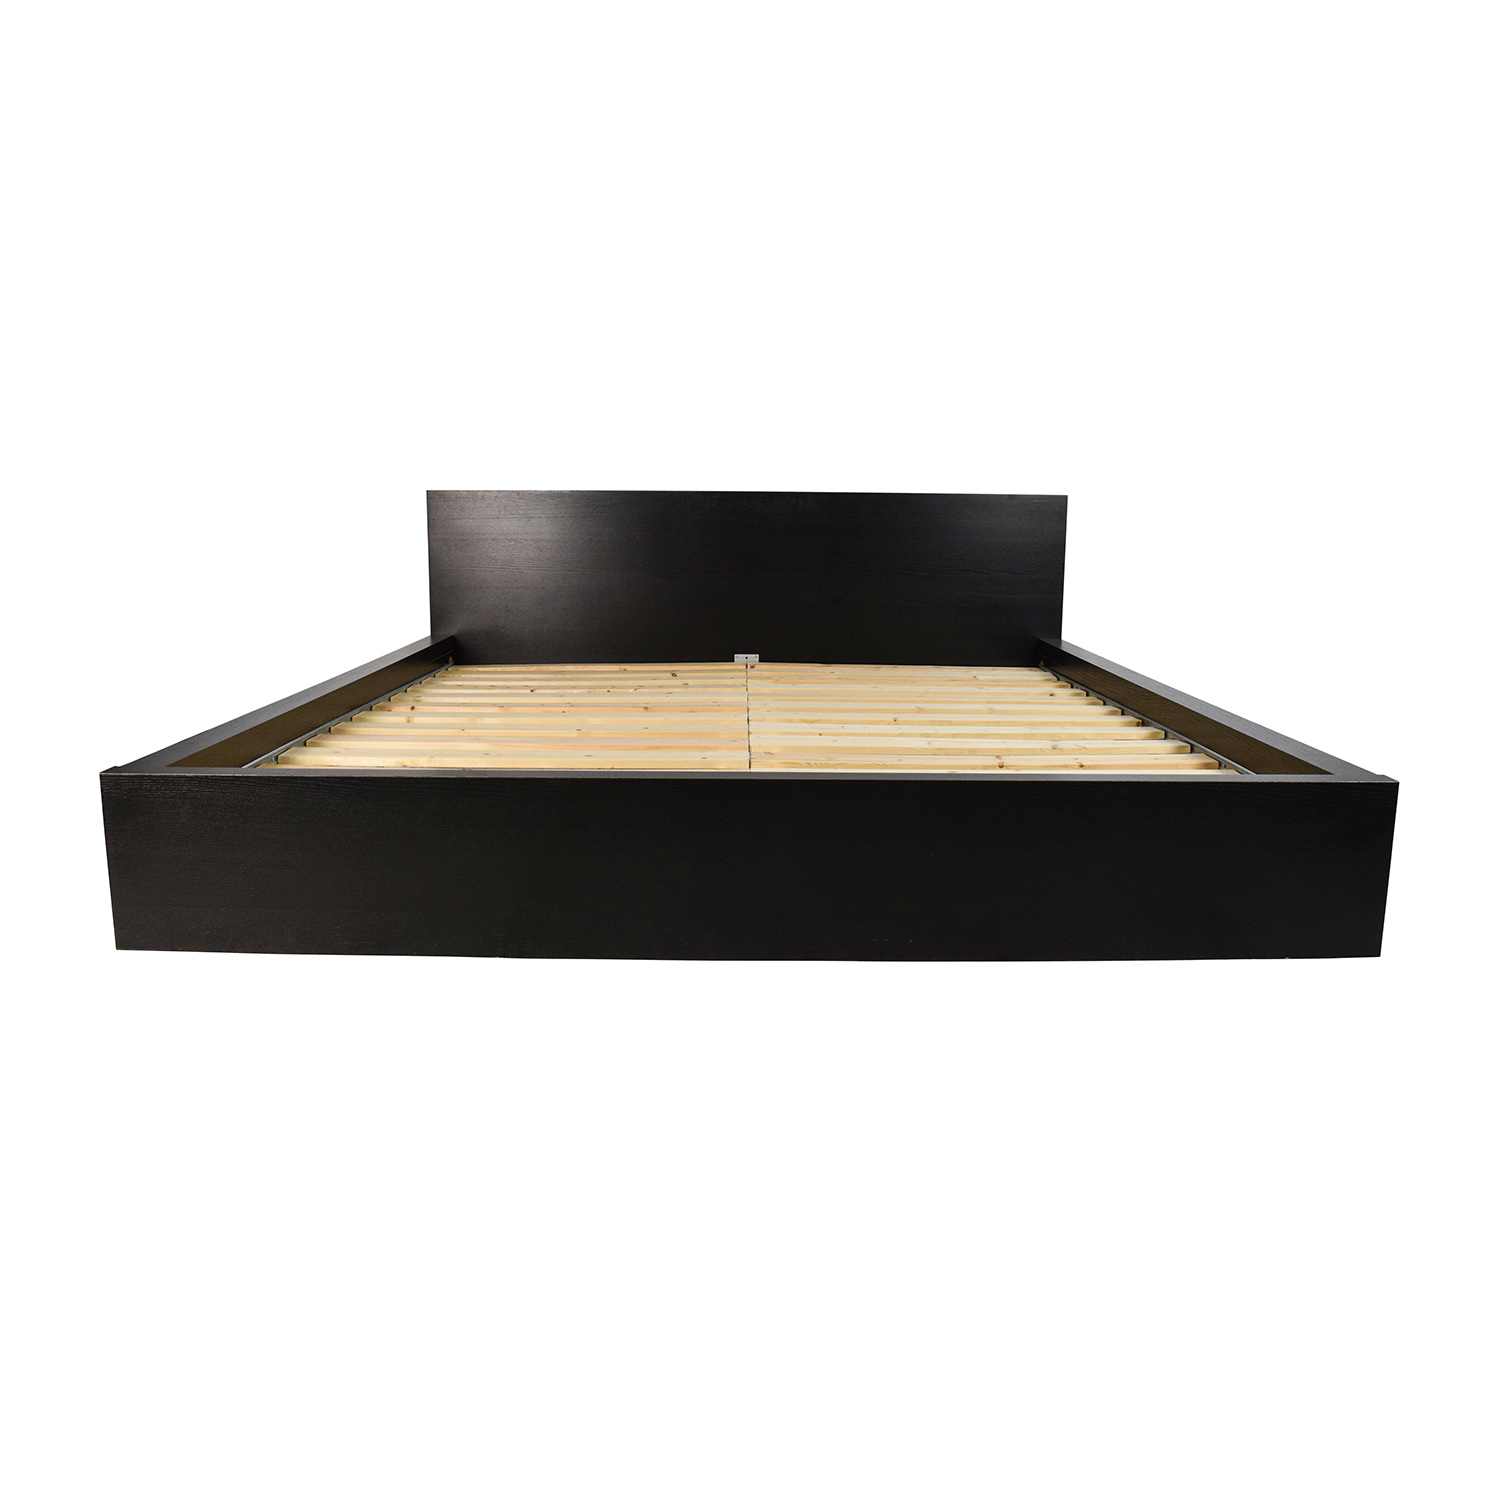 IKEA IKEA MALM King Size Bed / Beds